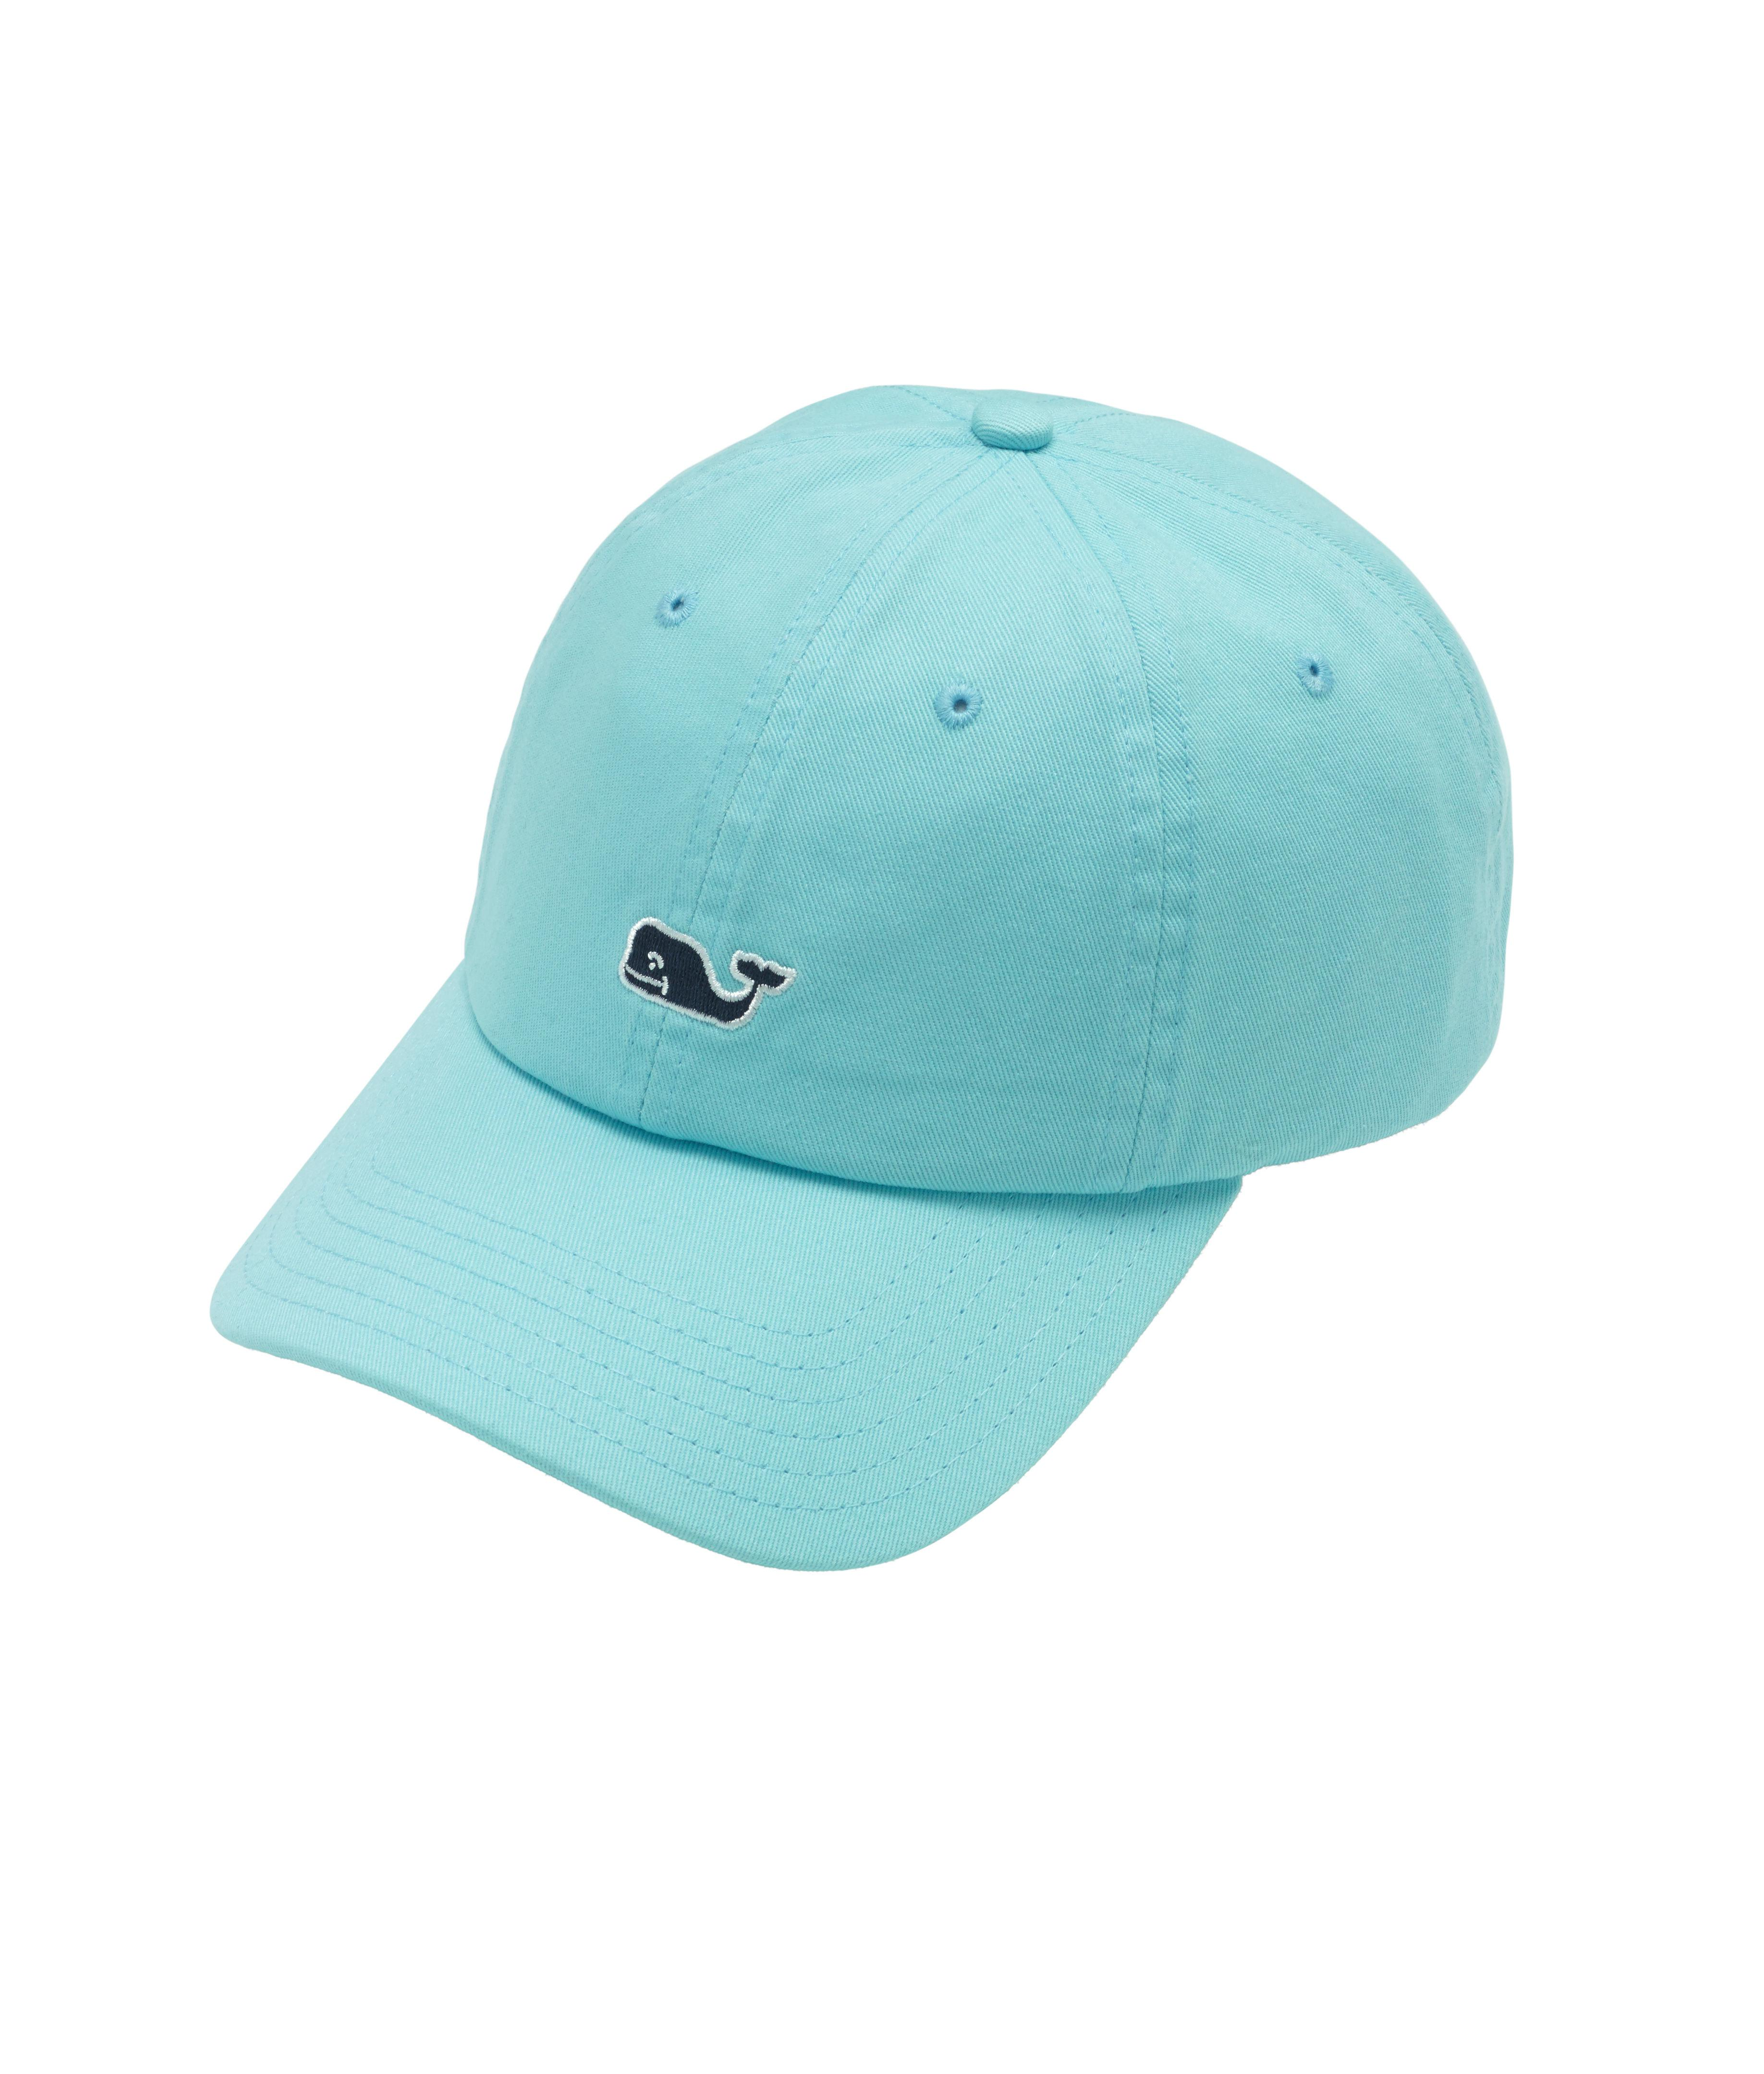 0f882b8a0 Vineyard Vines Blue Whale Logo Baseball Hat for men